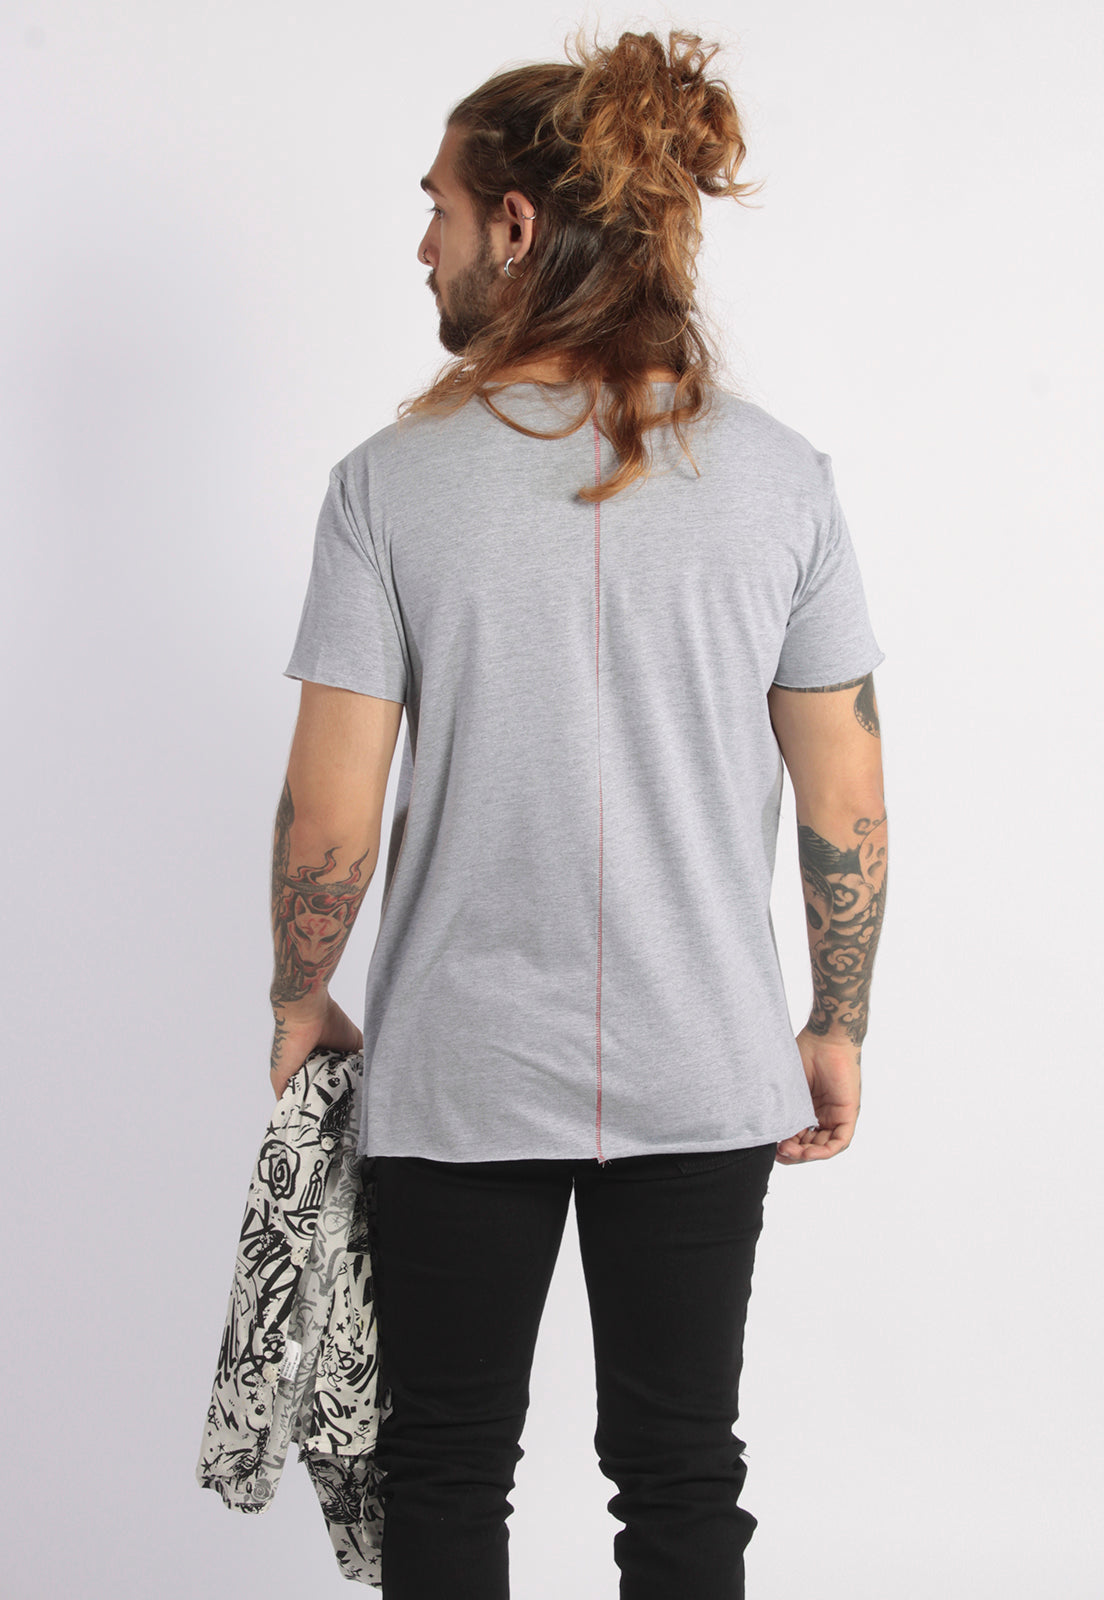 CAMISETA MASCULINA CORTE A FIO - JUICY SWEET TASTY DTG